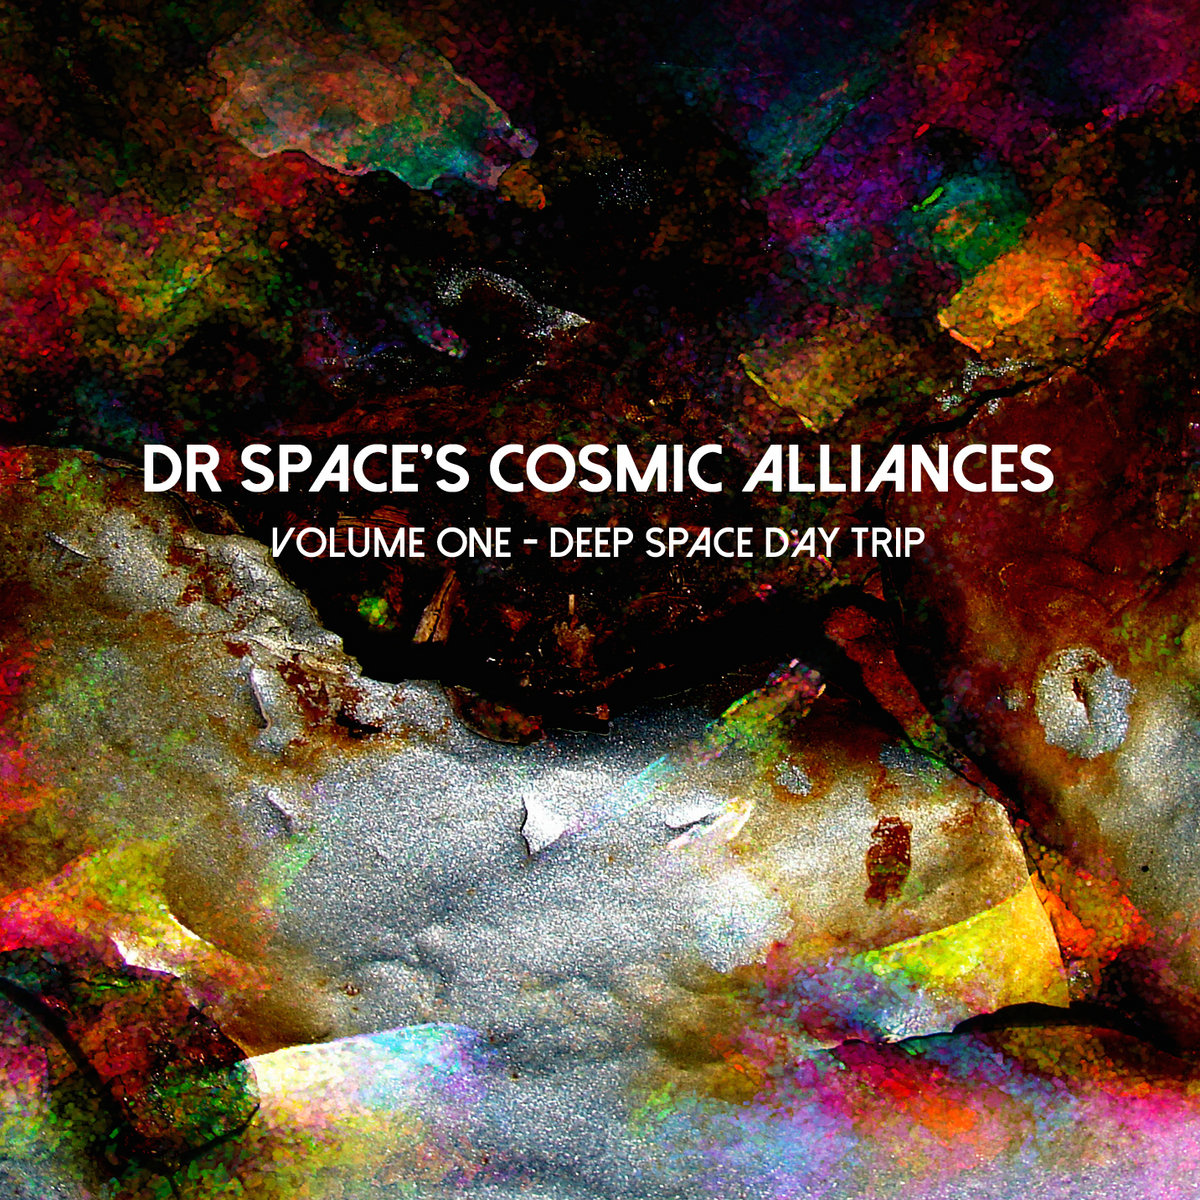 Reseña: DR. SPACE.- 'Dr Space's Cosmic Alliances' (Vol. One-Deep Space Day Trip)